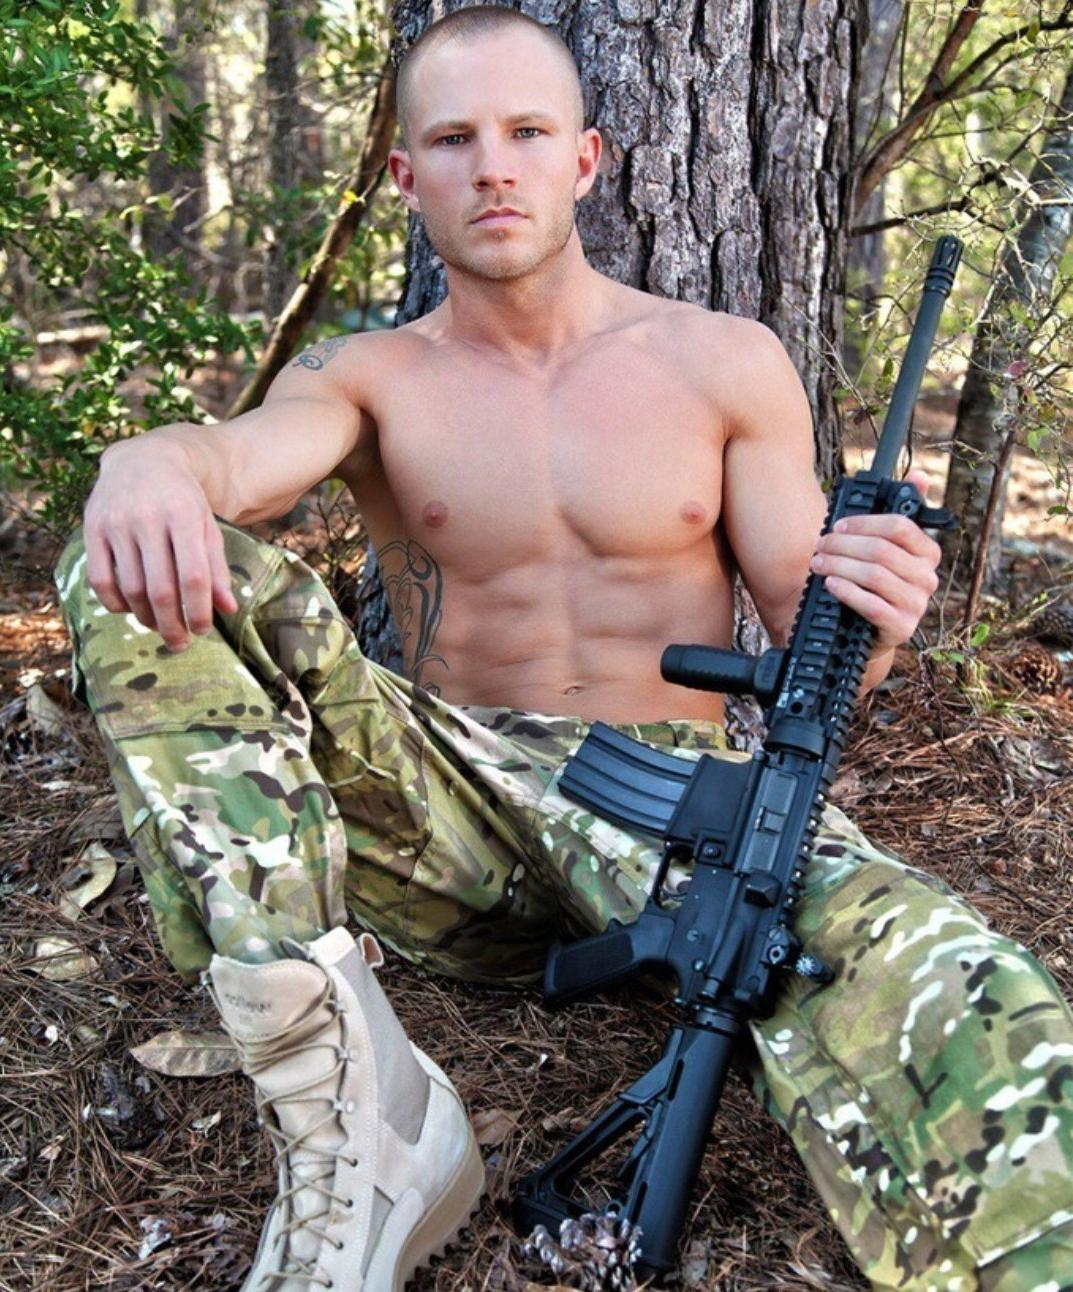 foreign-european-young-soldier-army-uniform-bare-chest